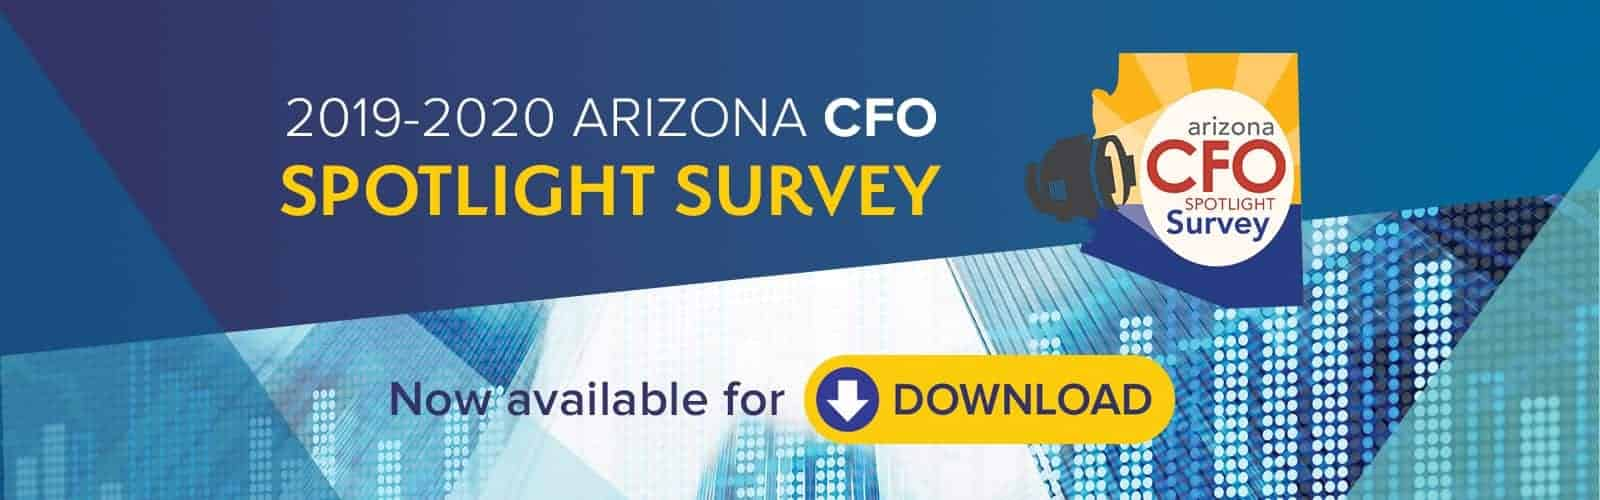 2019-2020 Arizona CFO Spotlight Survey